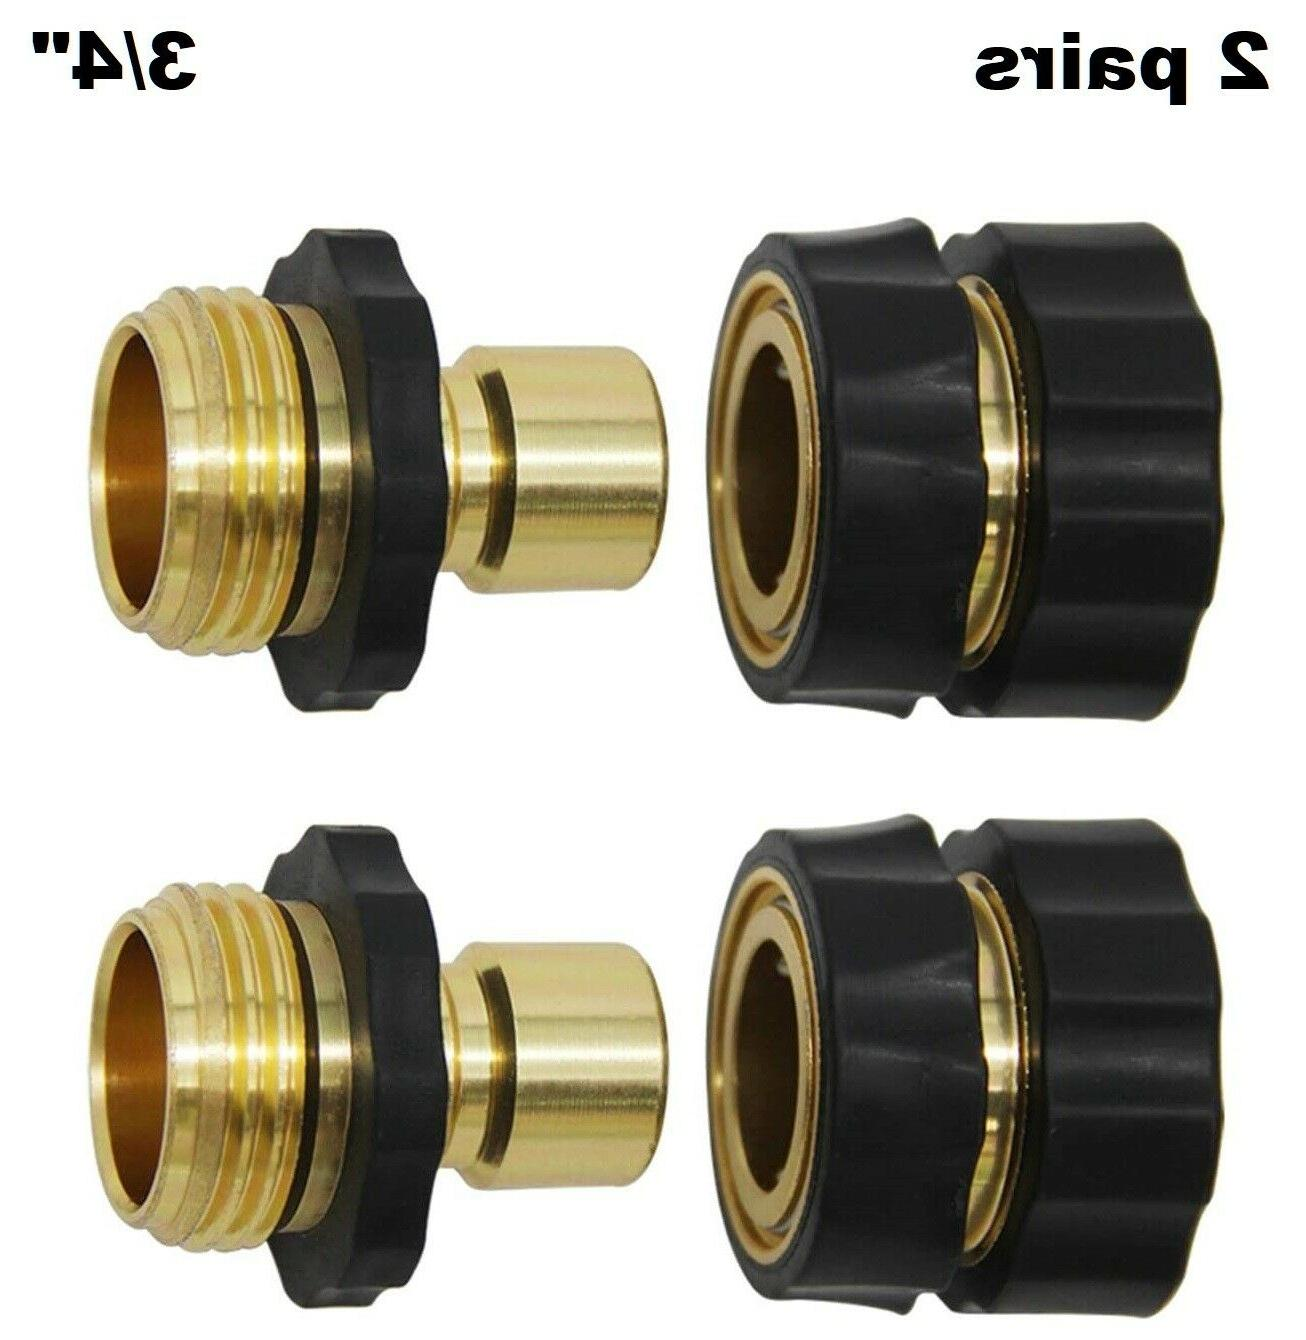 Garden Water Hose Quick Connect Fittings Faucet Adapter Disc